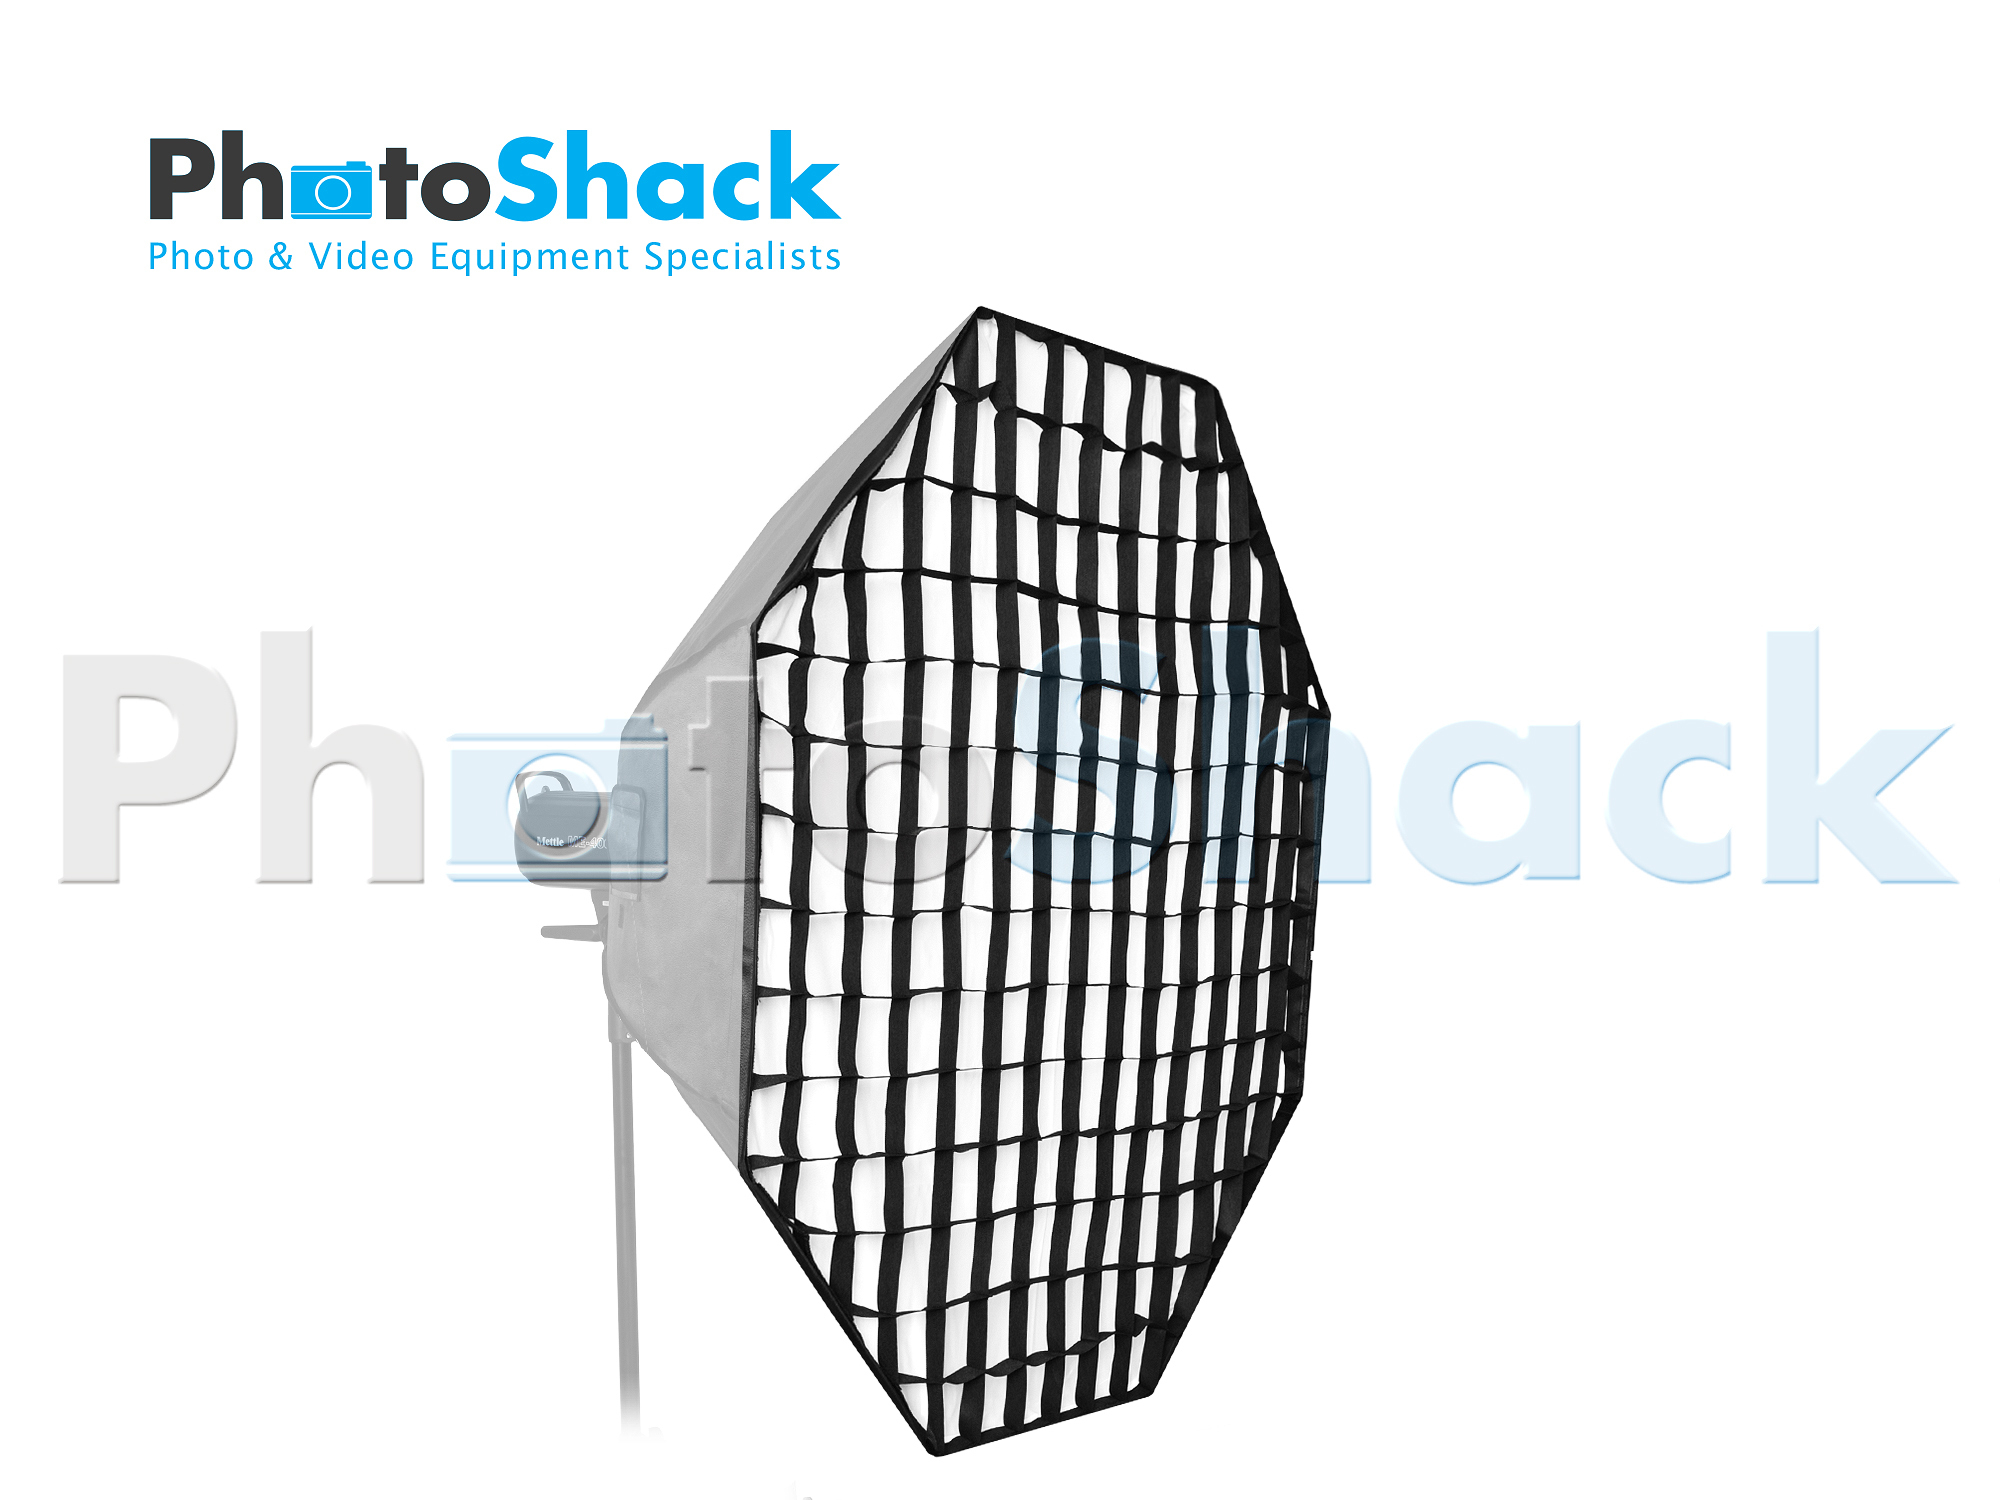 Softbox 120cm with Grid (Heat resistant) Octagonal - Bowens